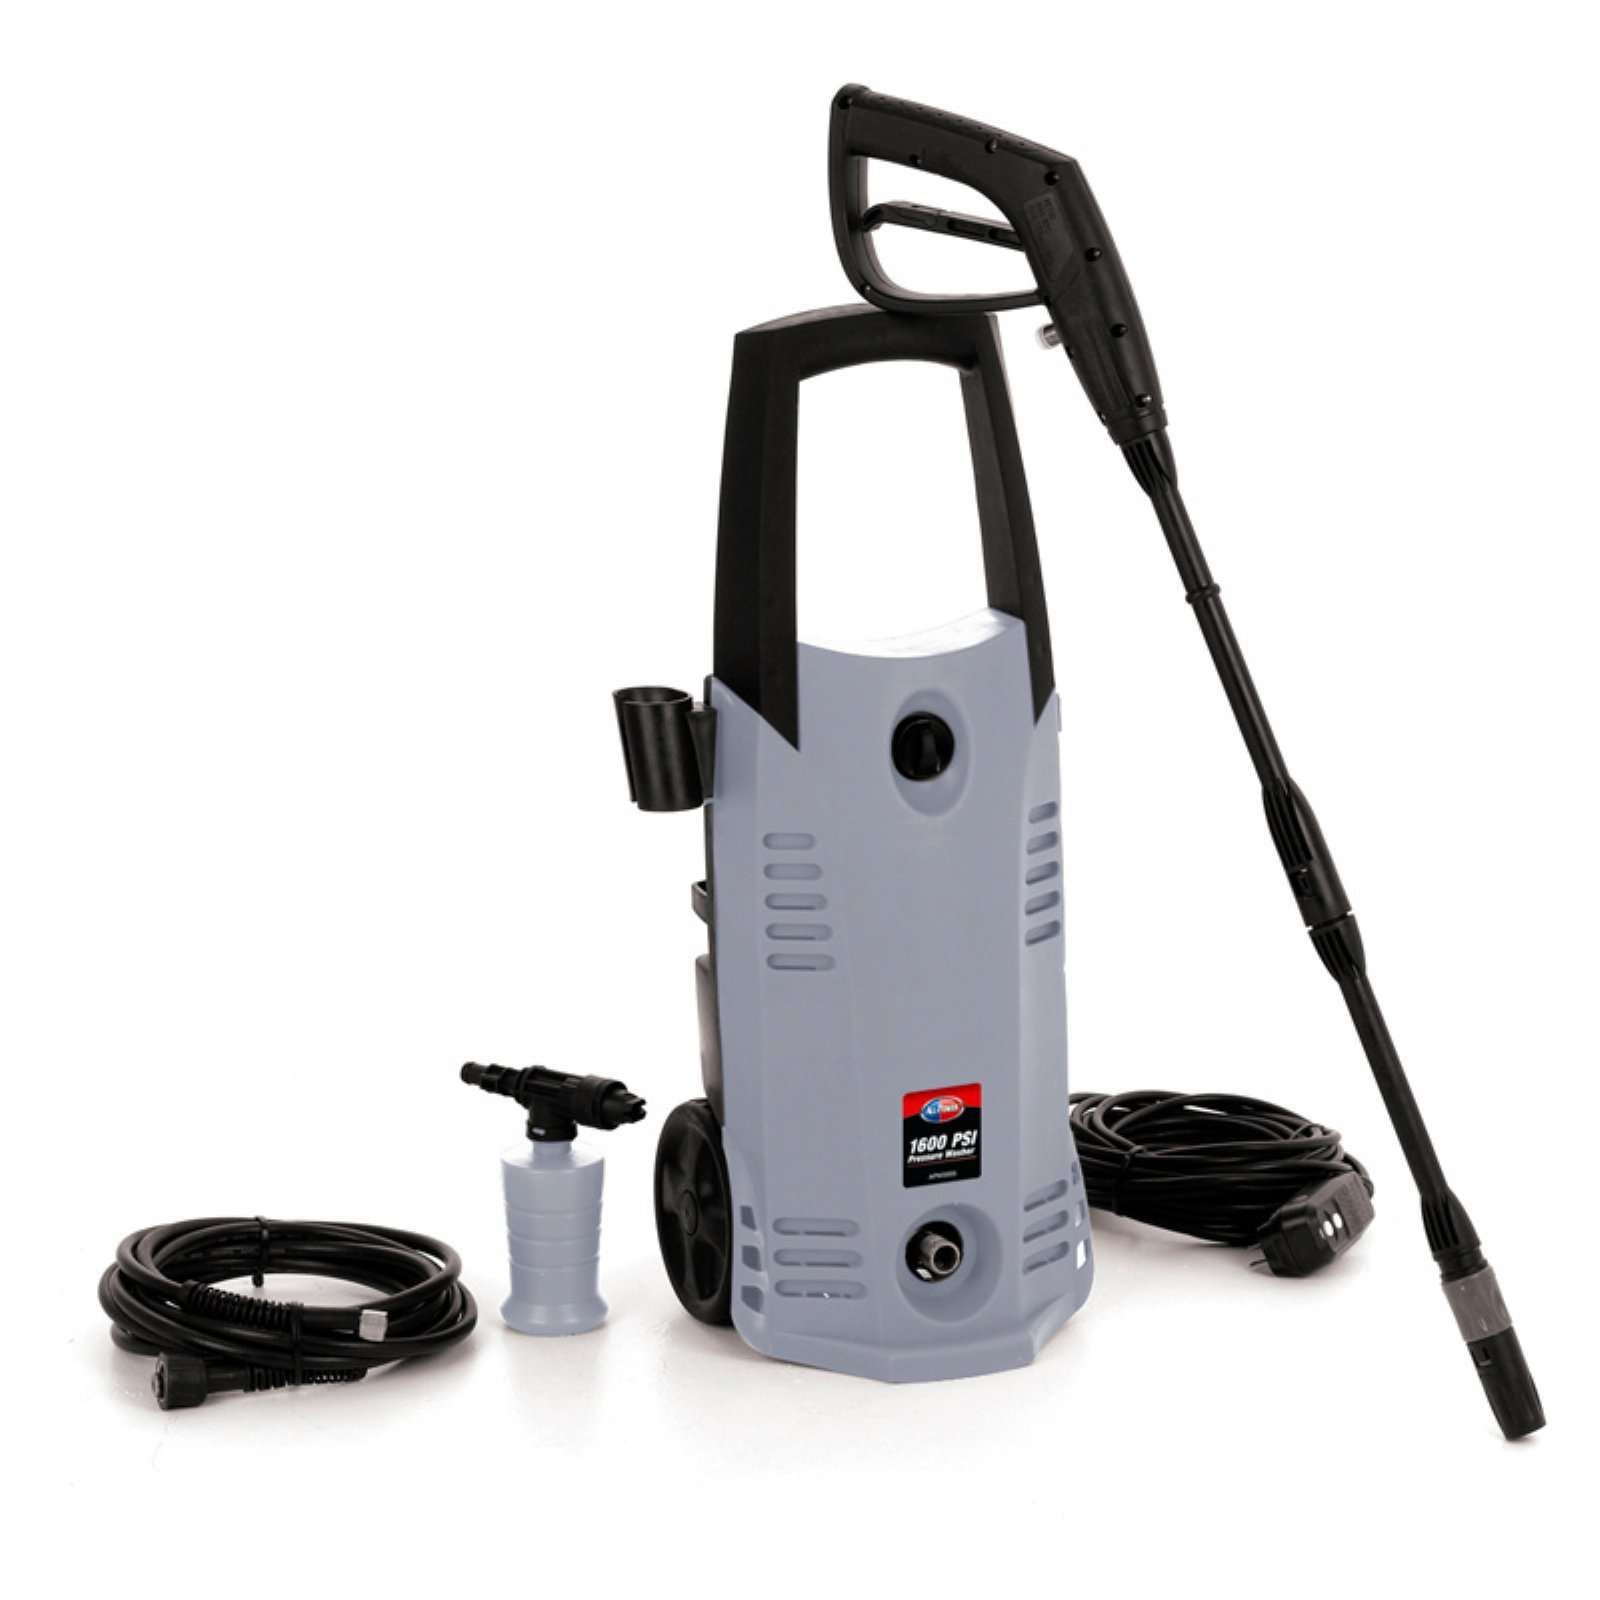 All Power 1600 PSI 1.6 GPM Electric Pressure Washer With Hose Reel for House, Garage, Vehicle and Outdoor Cleaning, APW5005